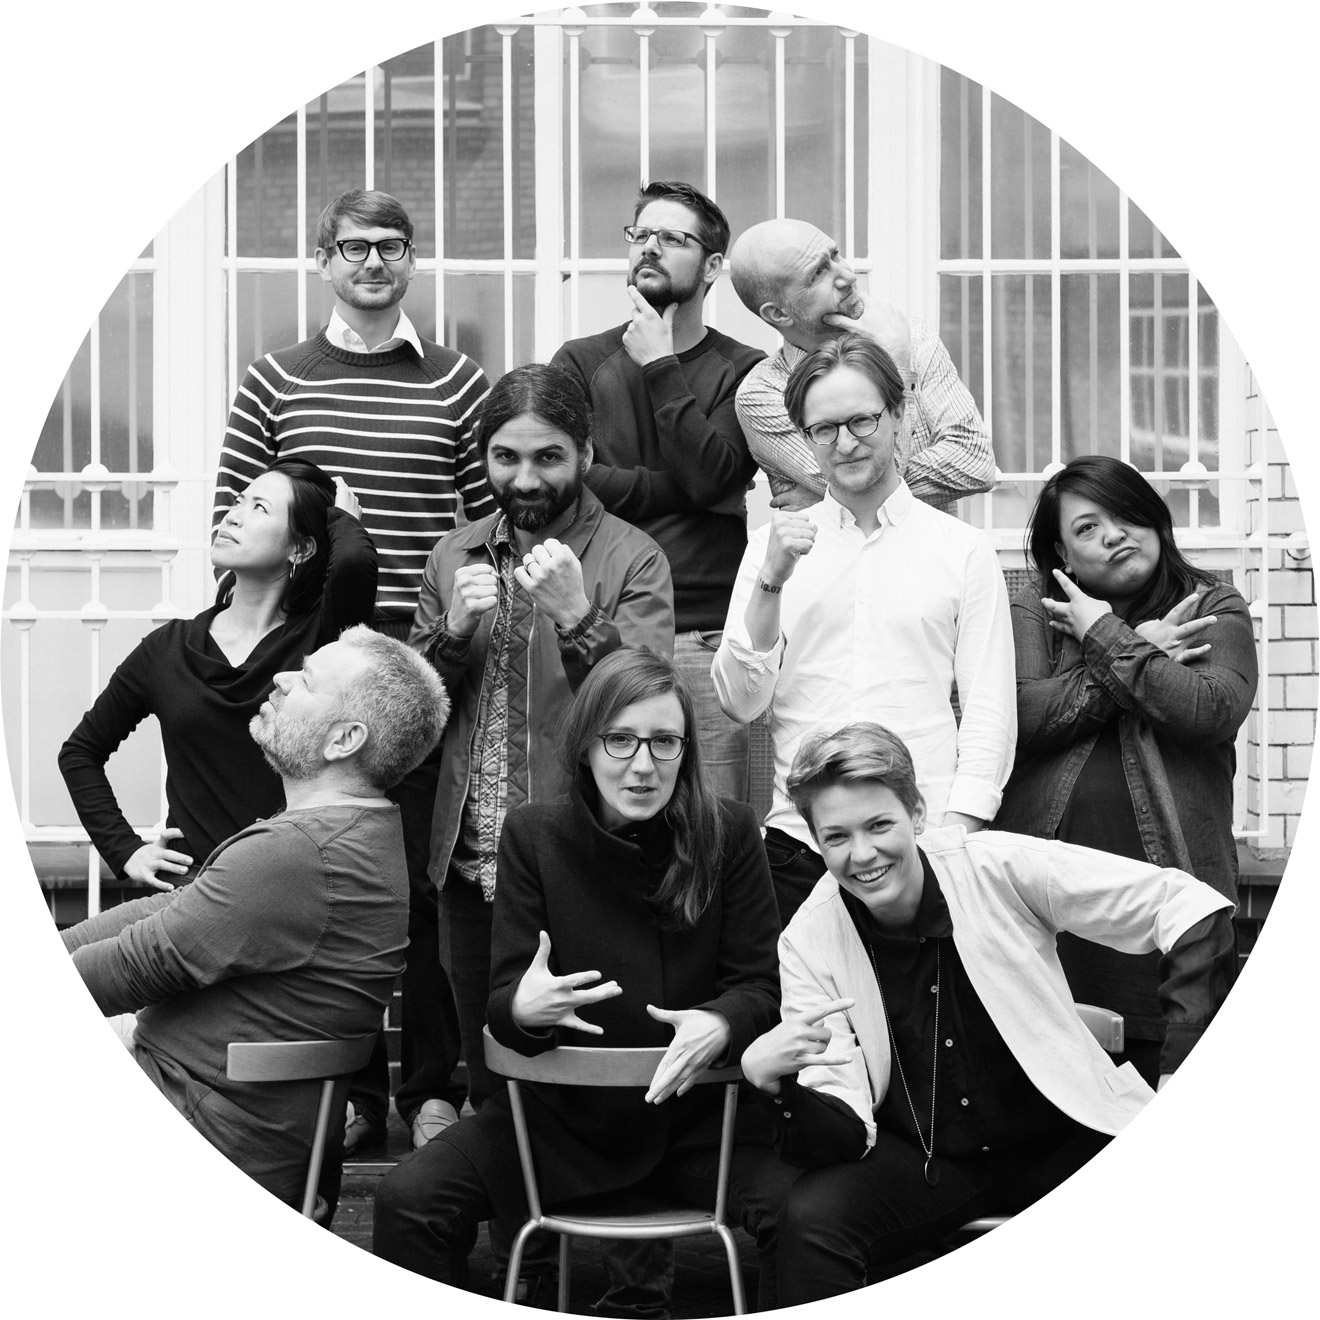 The FontShop Team. From left to right, top row: David Sudweeks, Ivo Gabrowitsch, Yves Peters; middle row: Angie Poon, Fabian Posada, Alexander Roth, Theresa dela Cruz; bottom row: Nils Töpfer, Jana Kühl, Alexandra Schwarzwald.